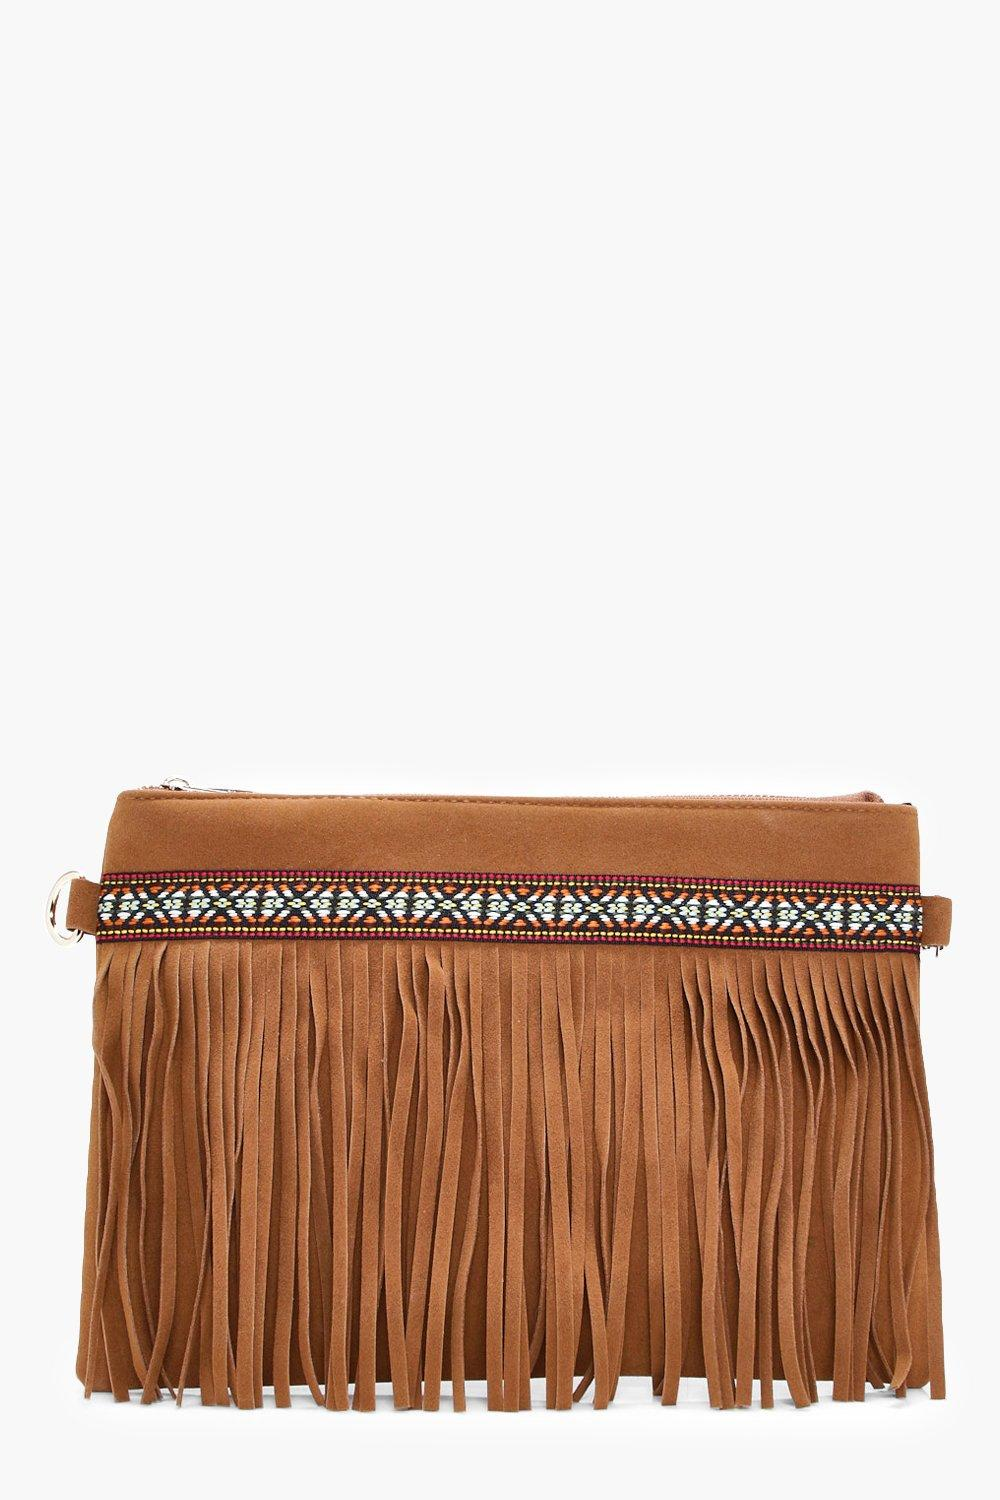 Aztec & Fringe Cross Body Bag - tan - Macy Aztec &